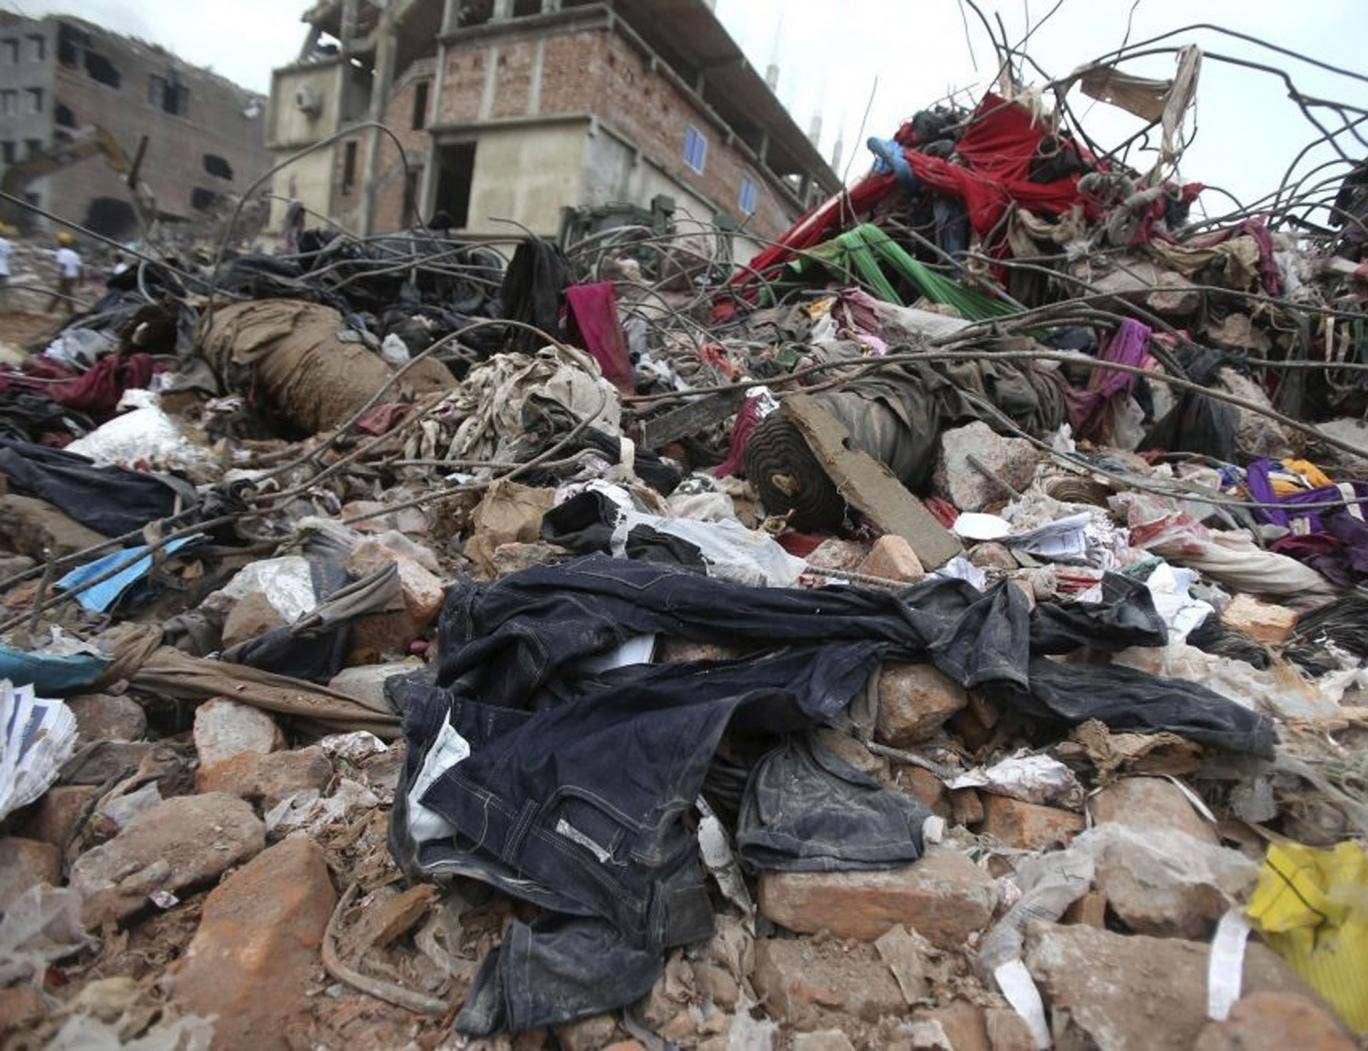 The purported hysteria can be triggered by large-scale tragedies such as the Rana Plaza disaster